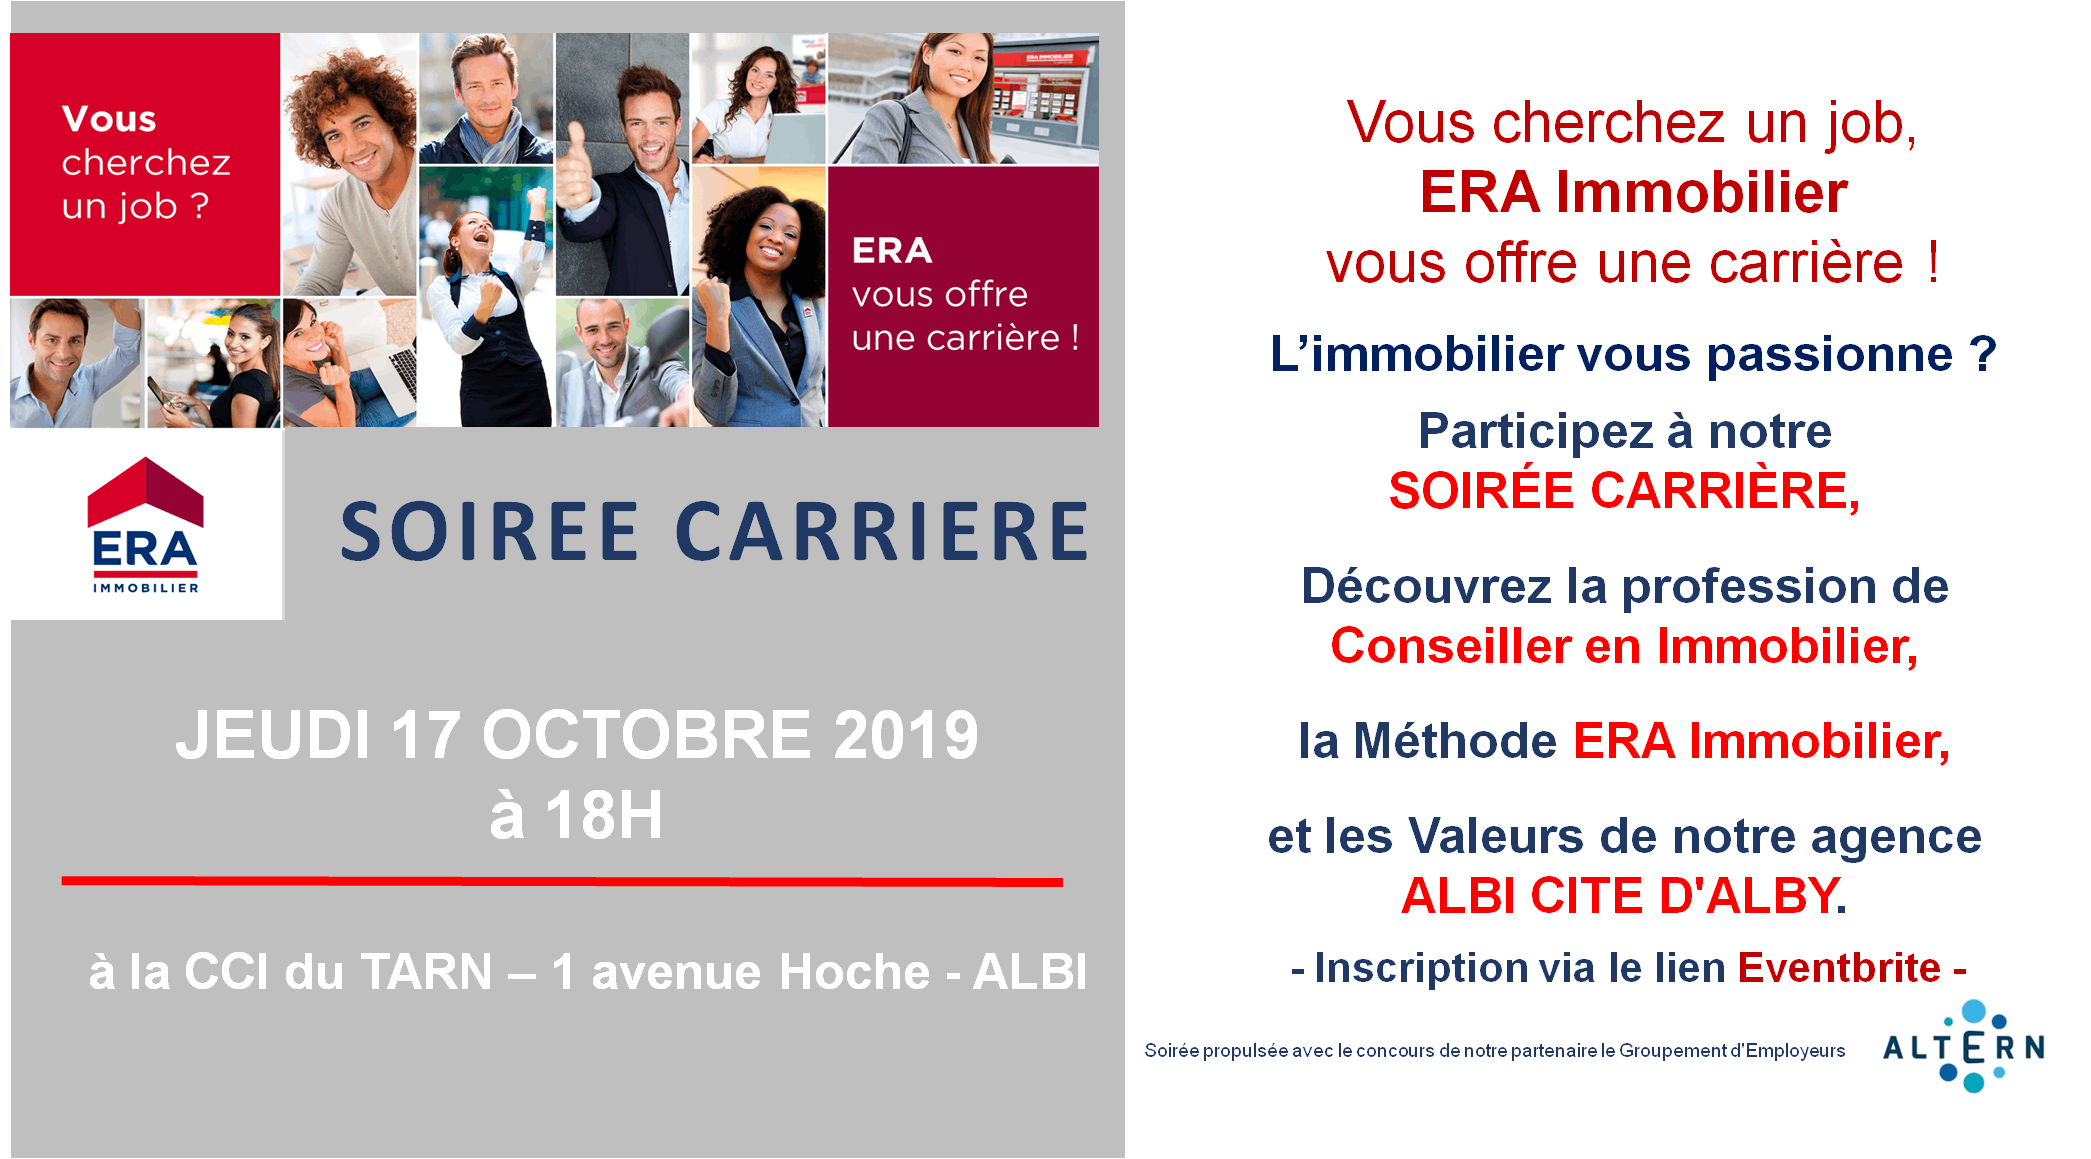 SOIREE CARRIERE ERA IMMOBILIER CITE DALBY